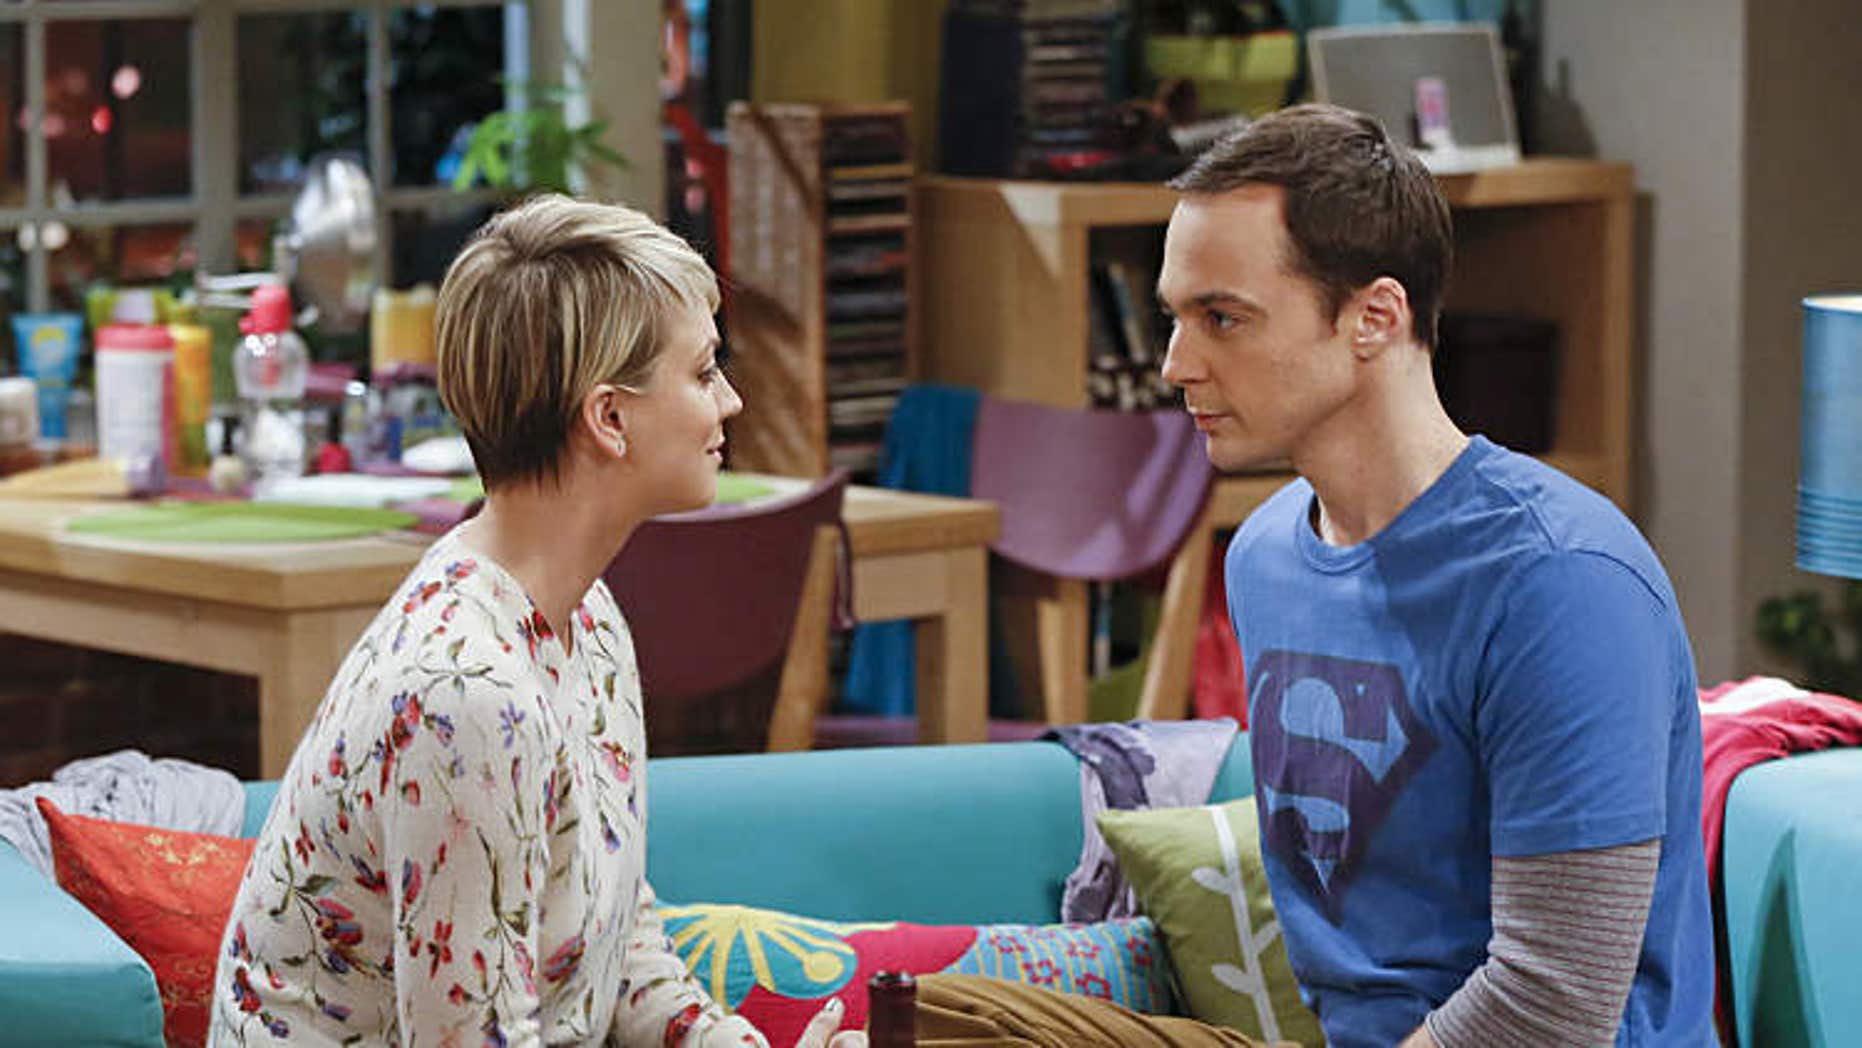 """Image features """"The Big Bang Theory"""" stars Jim Parsons and Kaley Cuoco"""